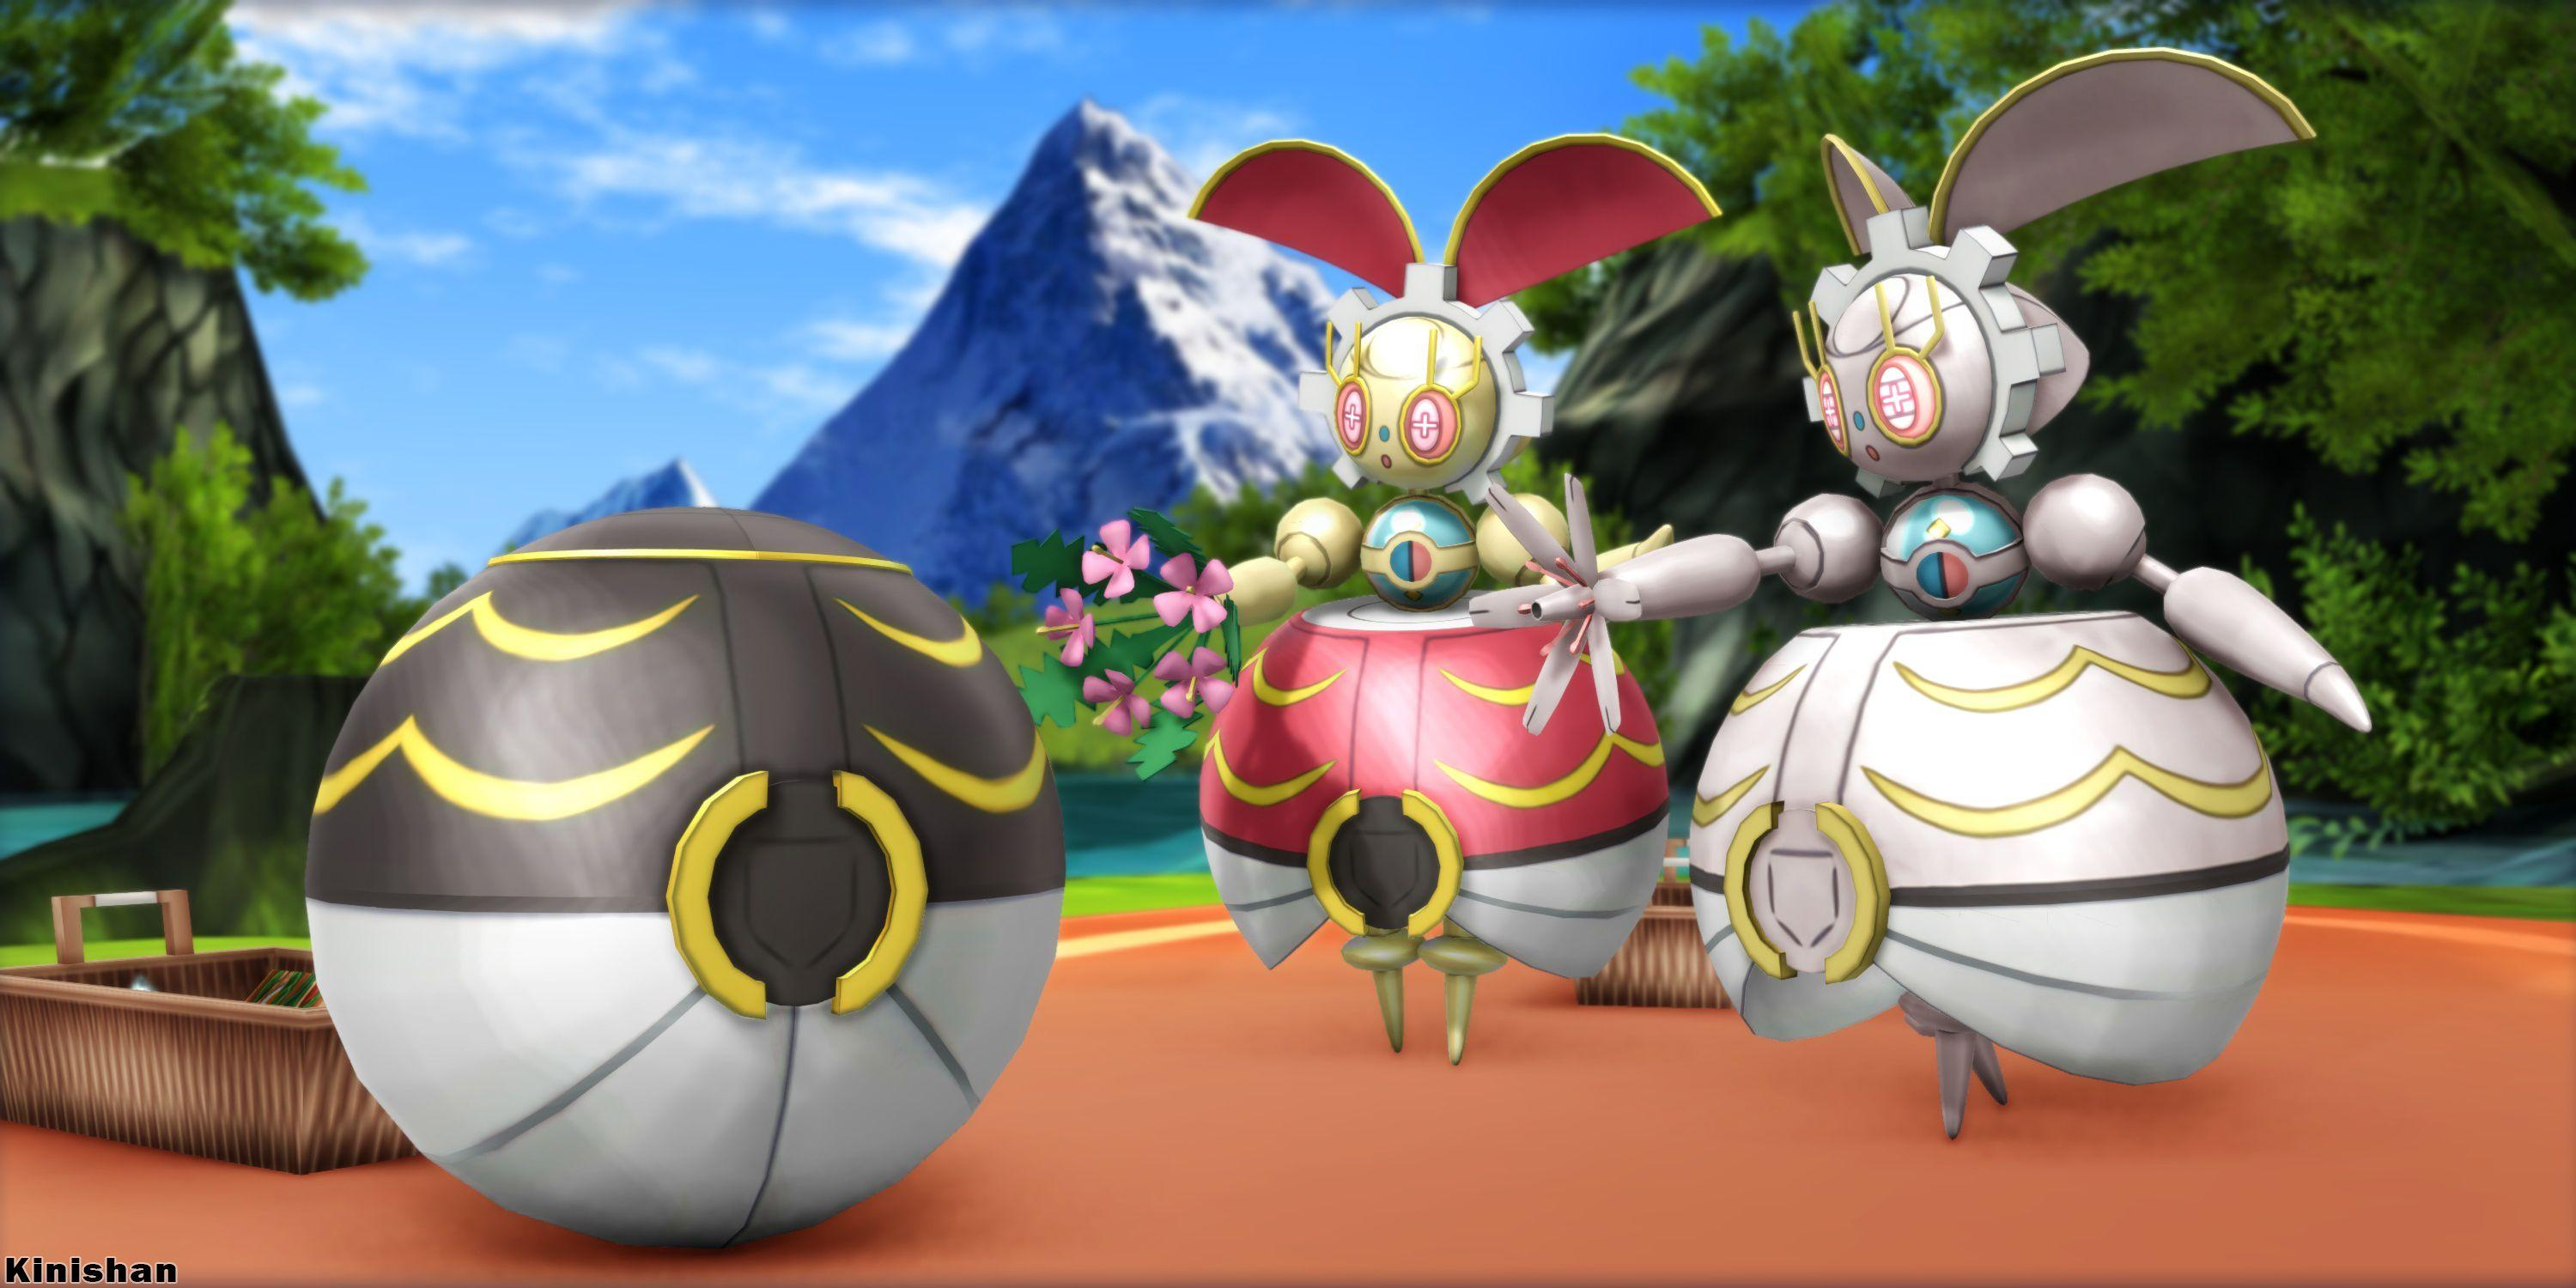 MMD Pokemon] Download- Magearna by Kinishan on DeviantArt